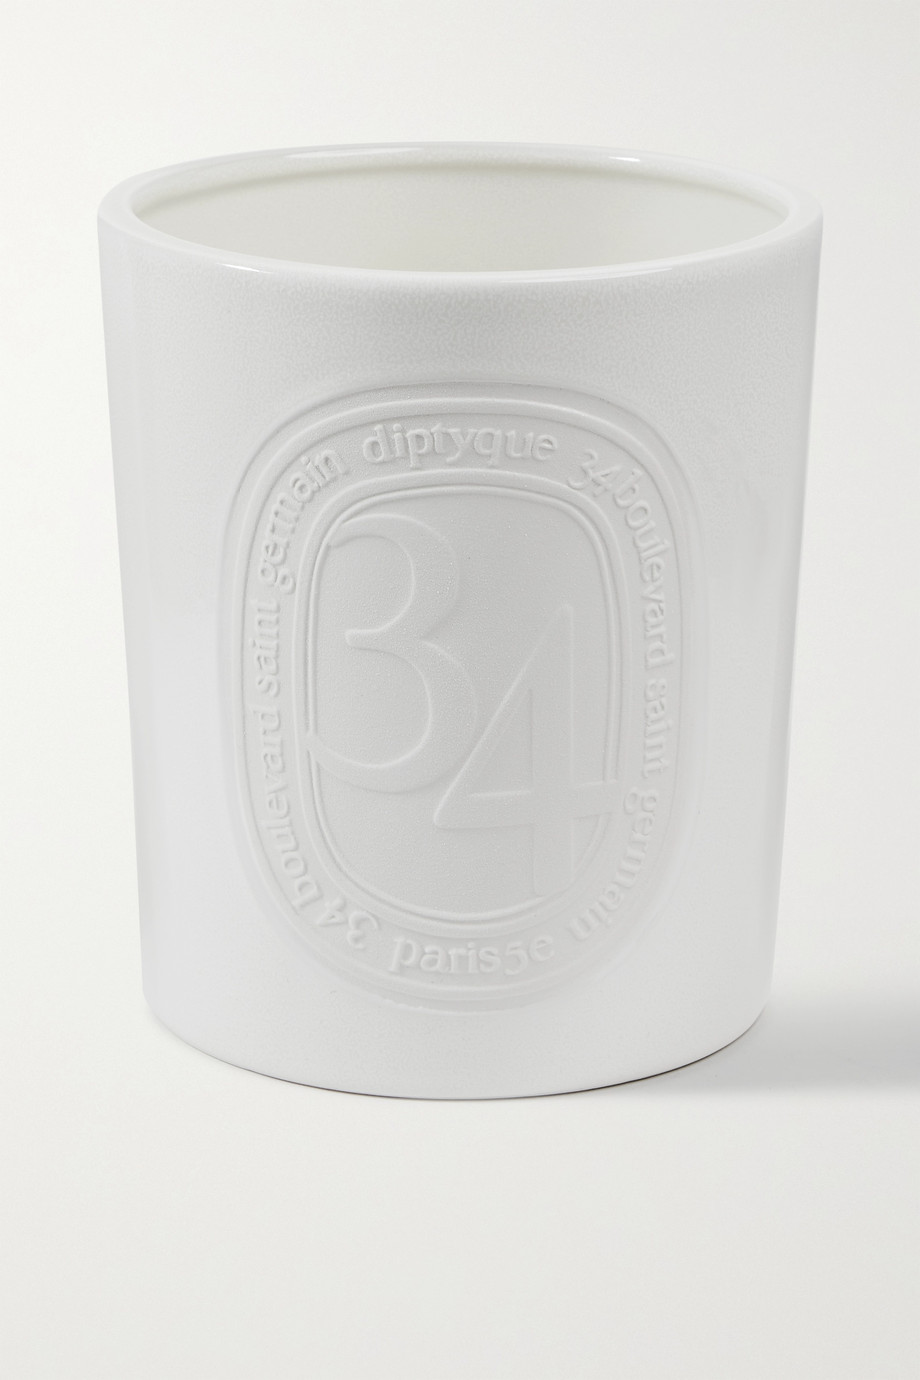 DIPTYQUE 34 Boulevard Saint Germain scented candle, 1500g